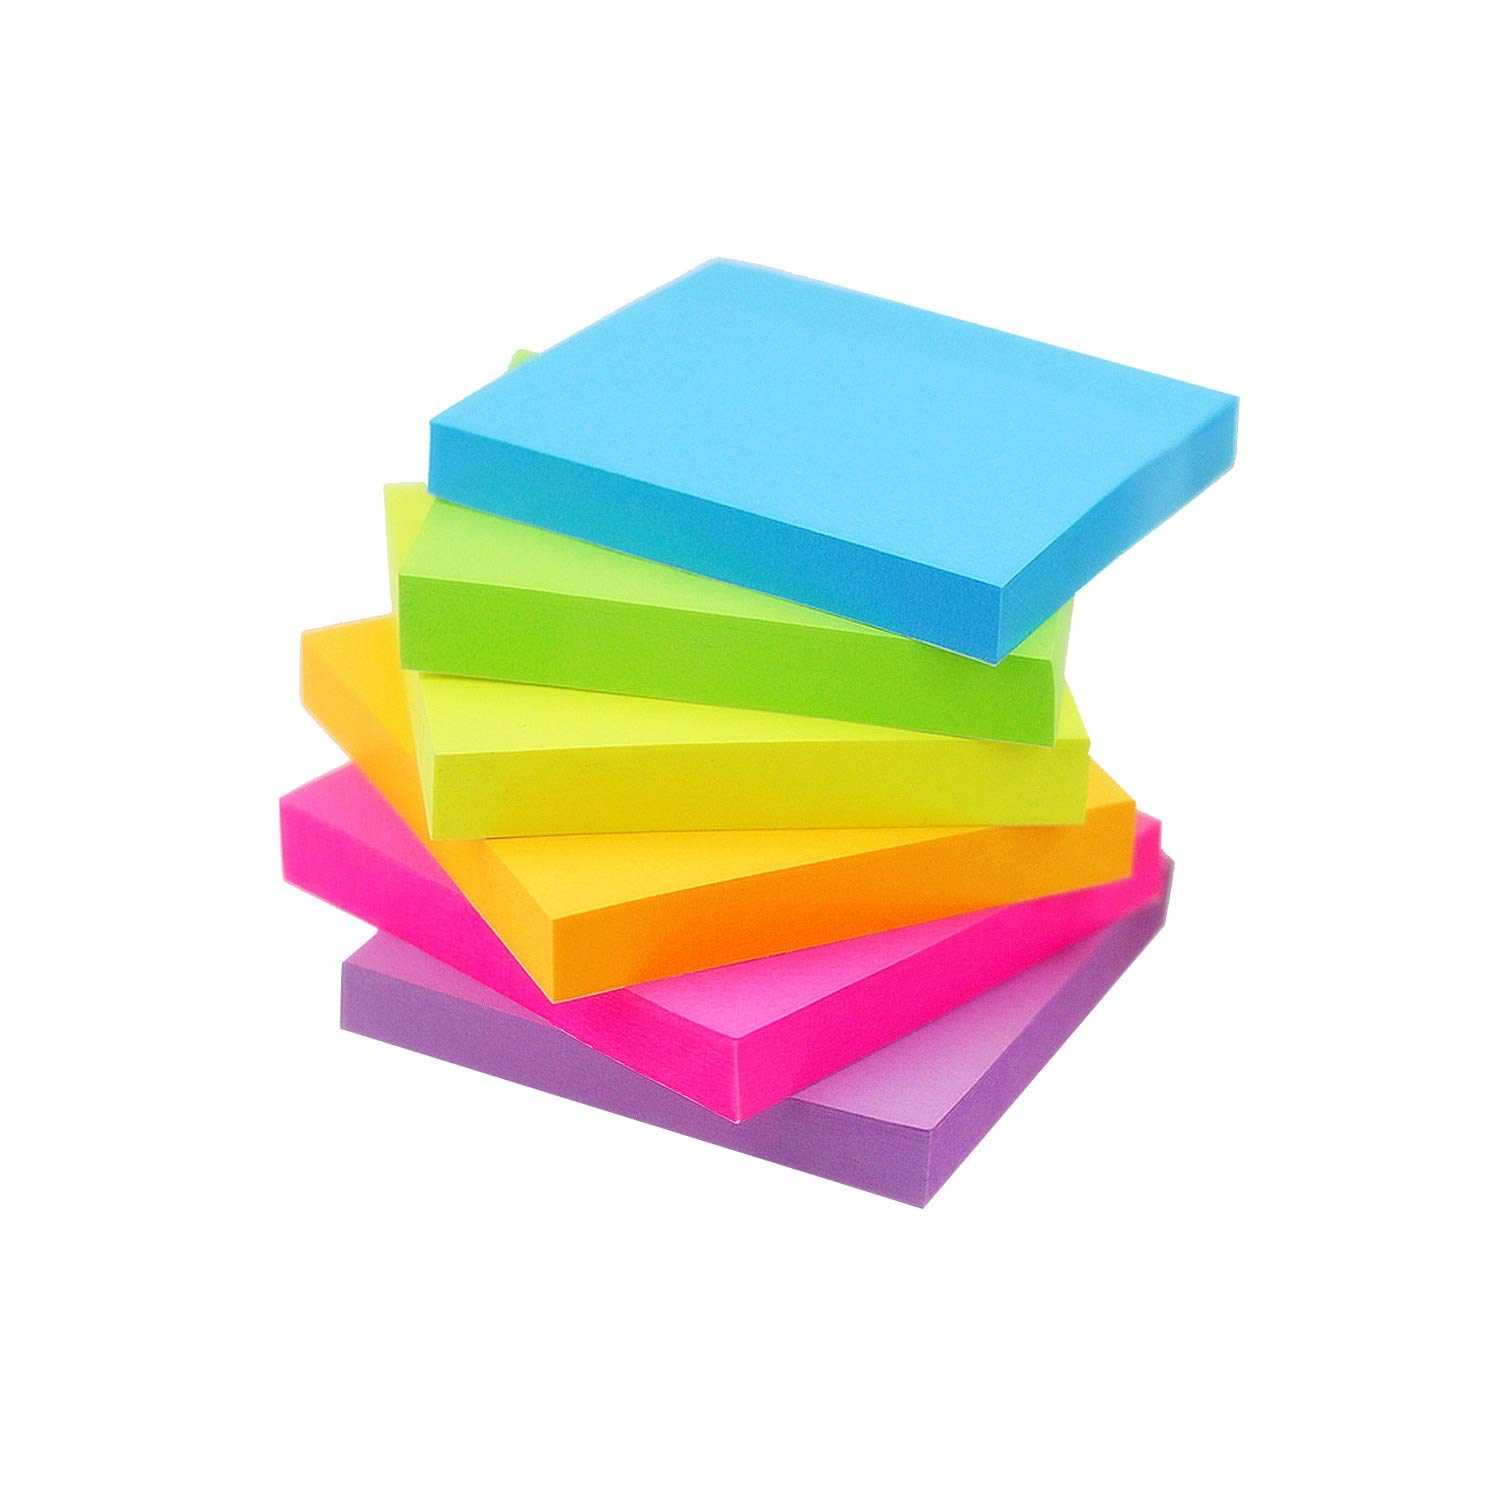 Early Buy Sticky Notes 6 Bright Color 48 Pads Self-Stick Notes 3 in x 3 in, 100 Sheets/Pad by Early Buy